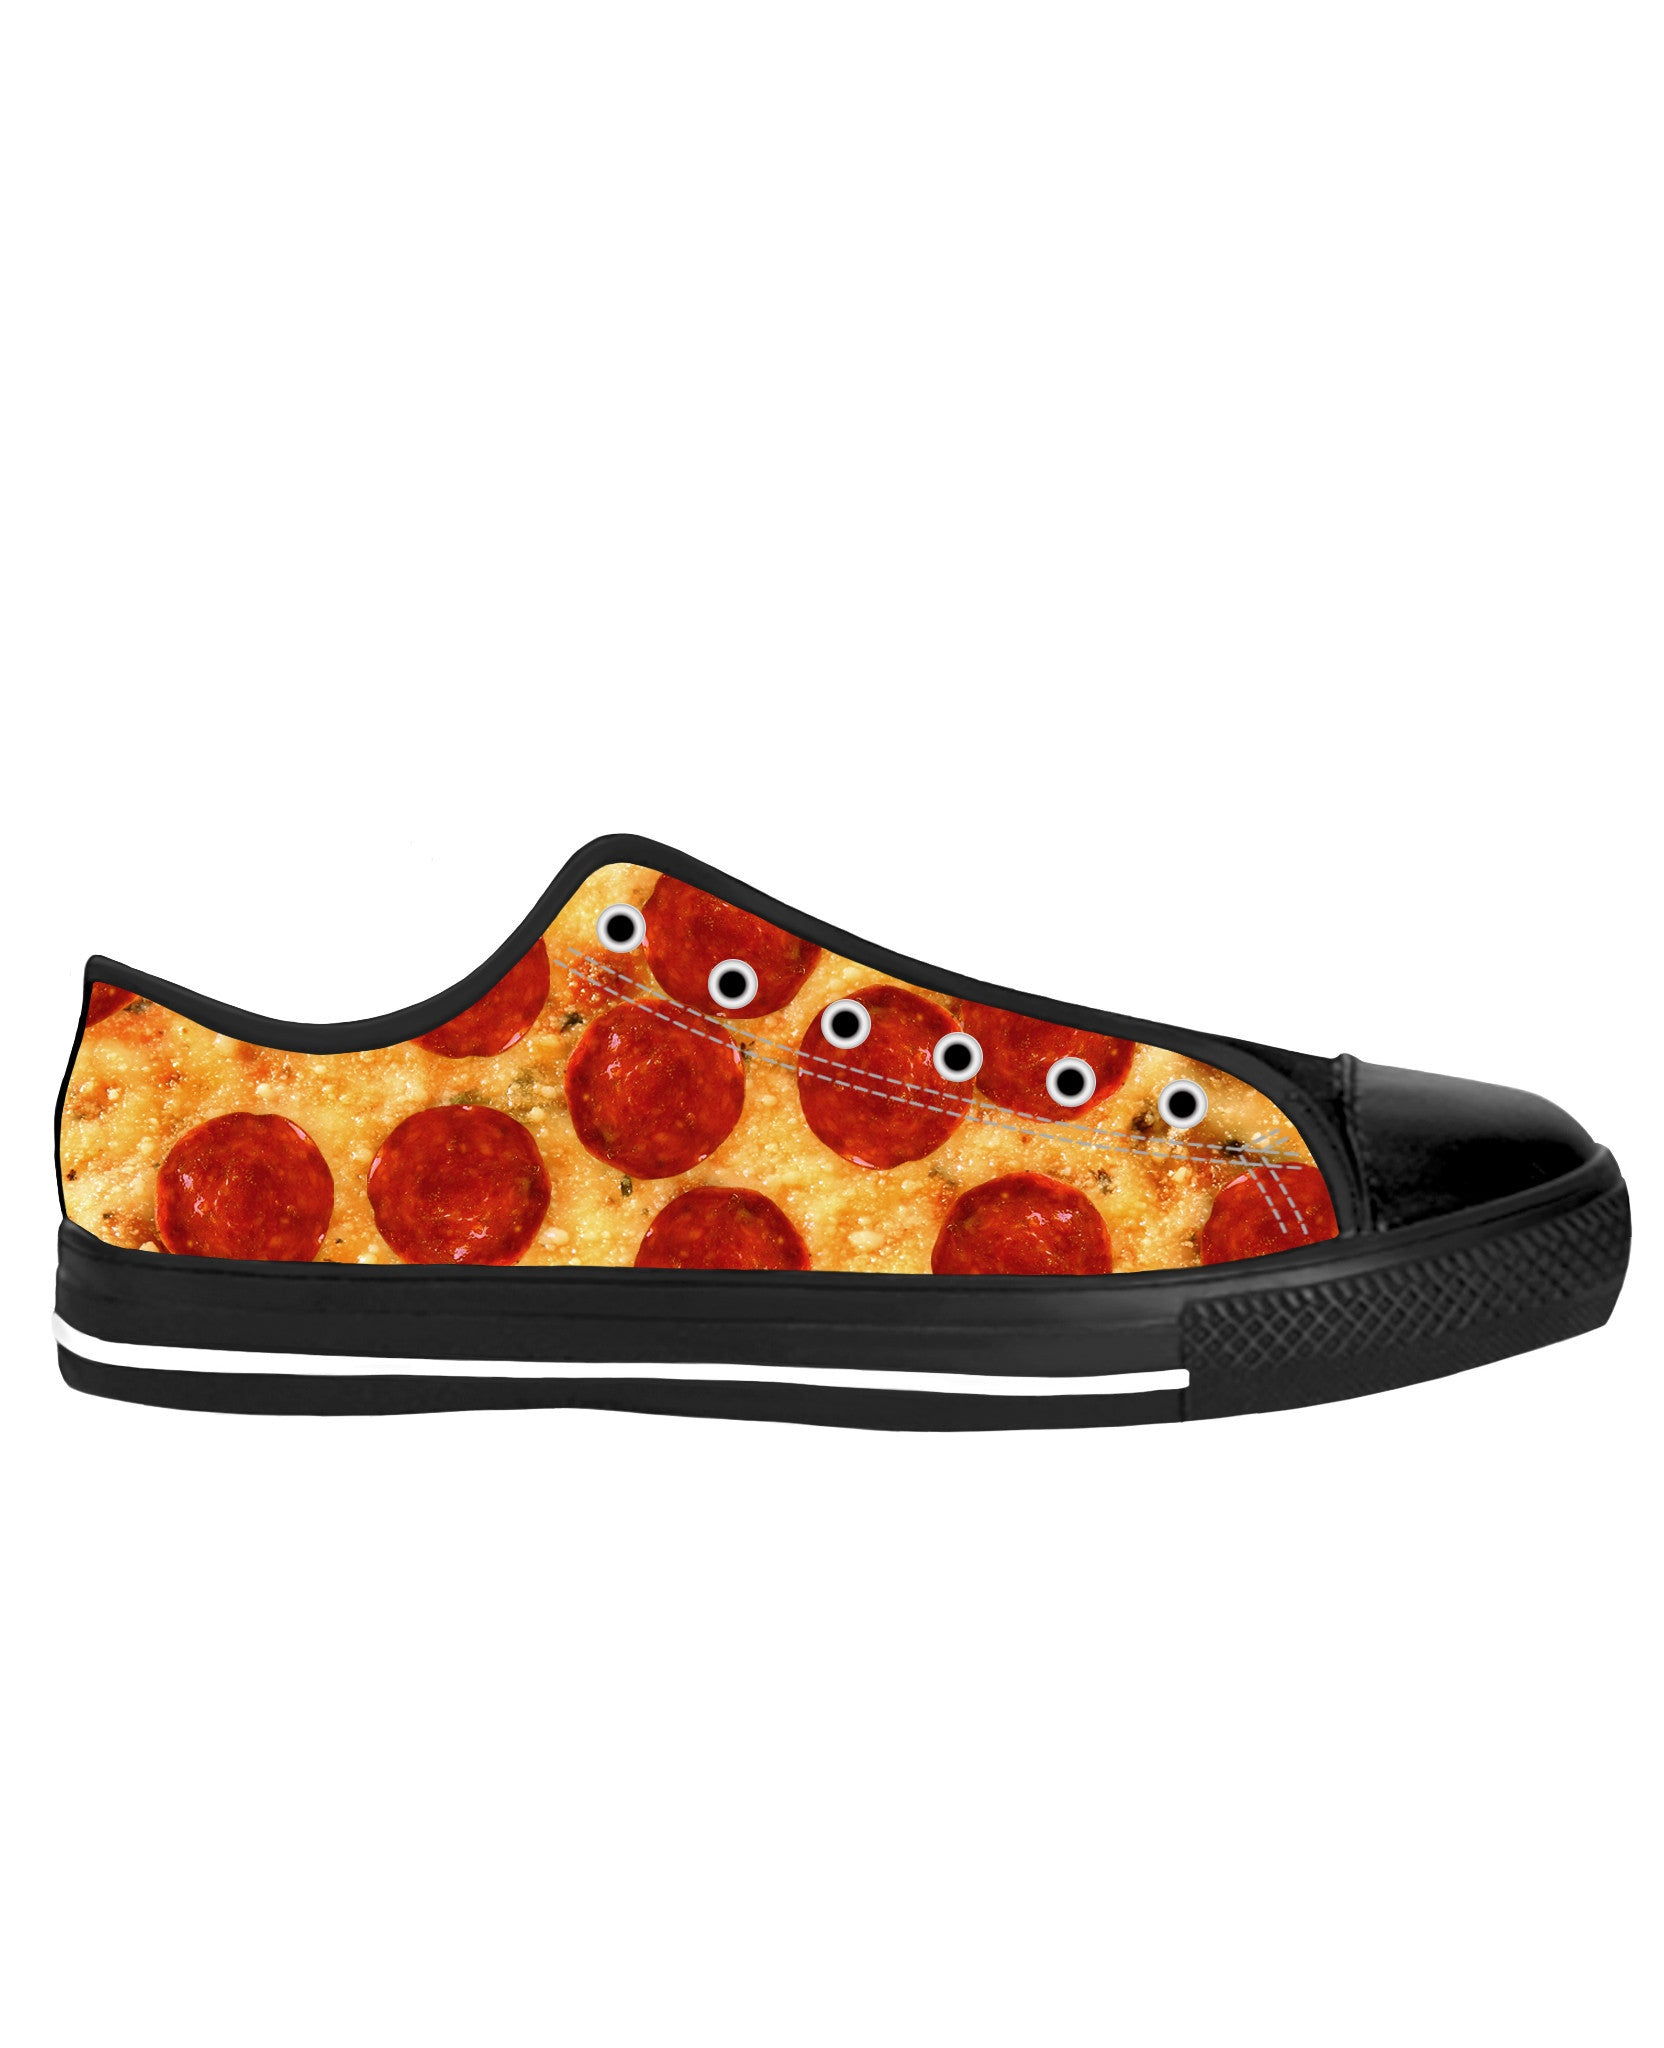 Pizza Black Sole Low Tops